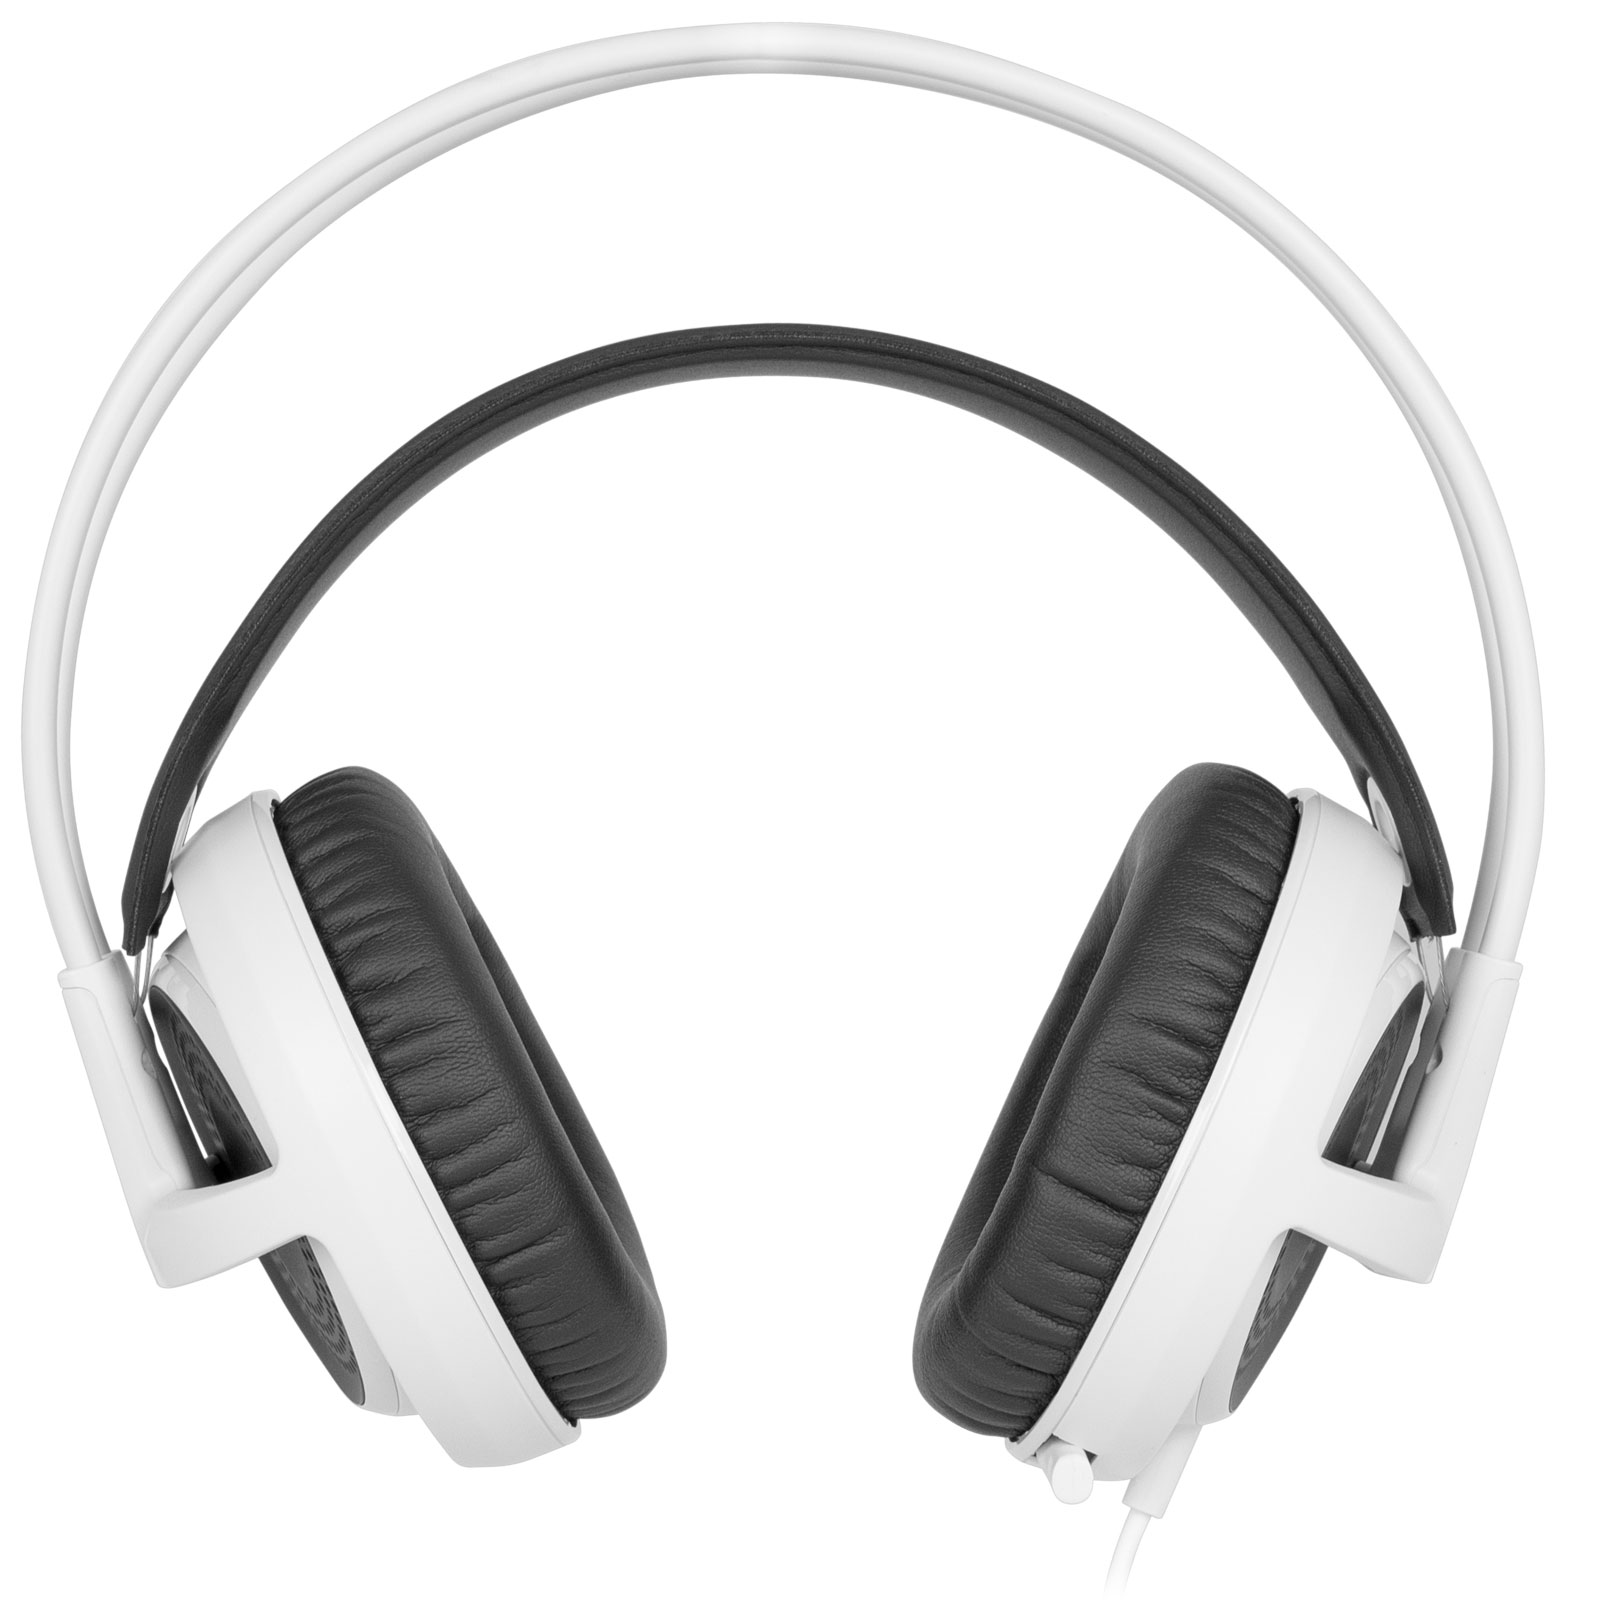 Steelseries Siberia V3 Blanc Stereo Blanc - Micro-casque - 3